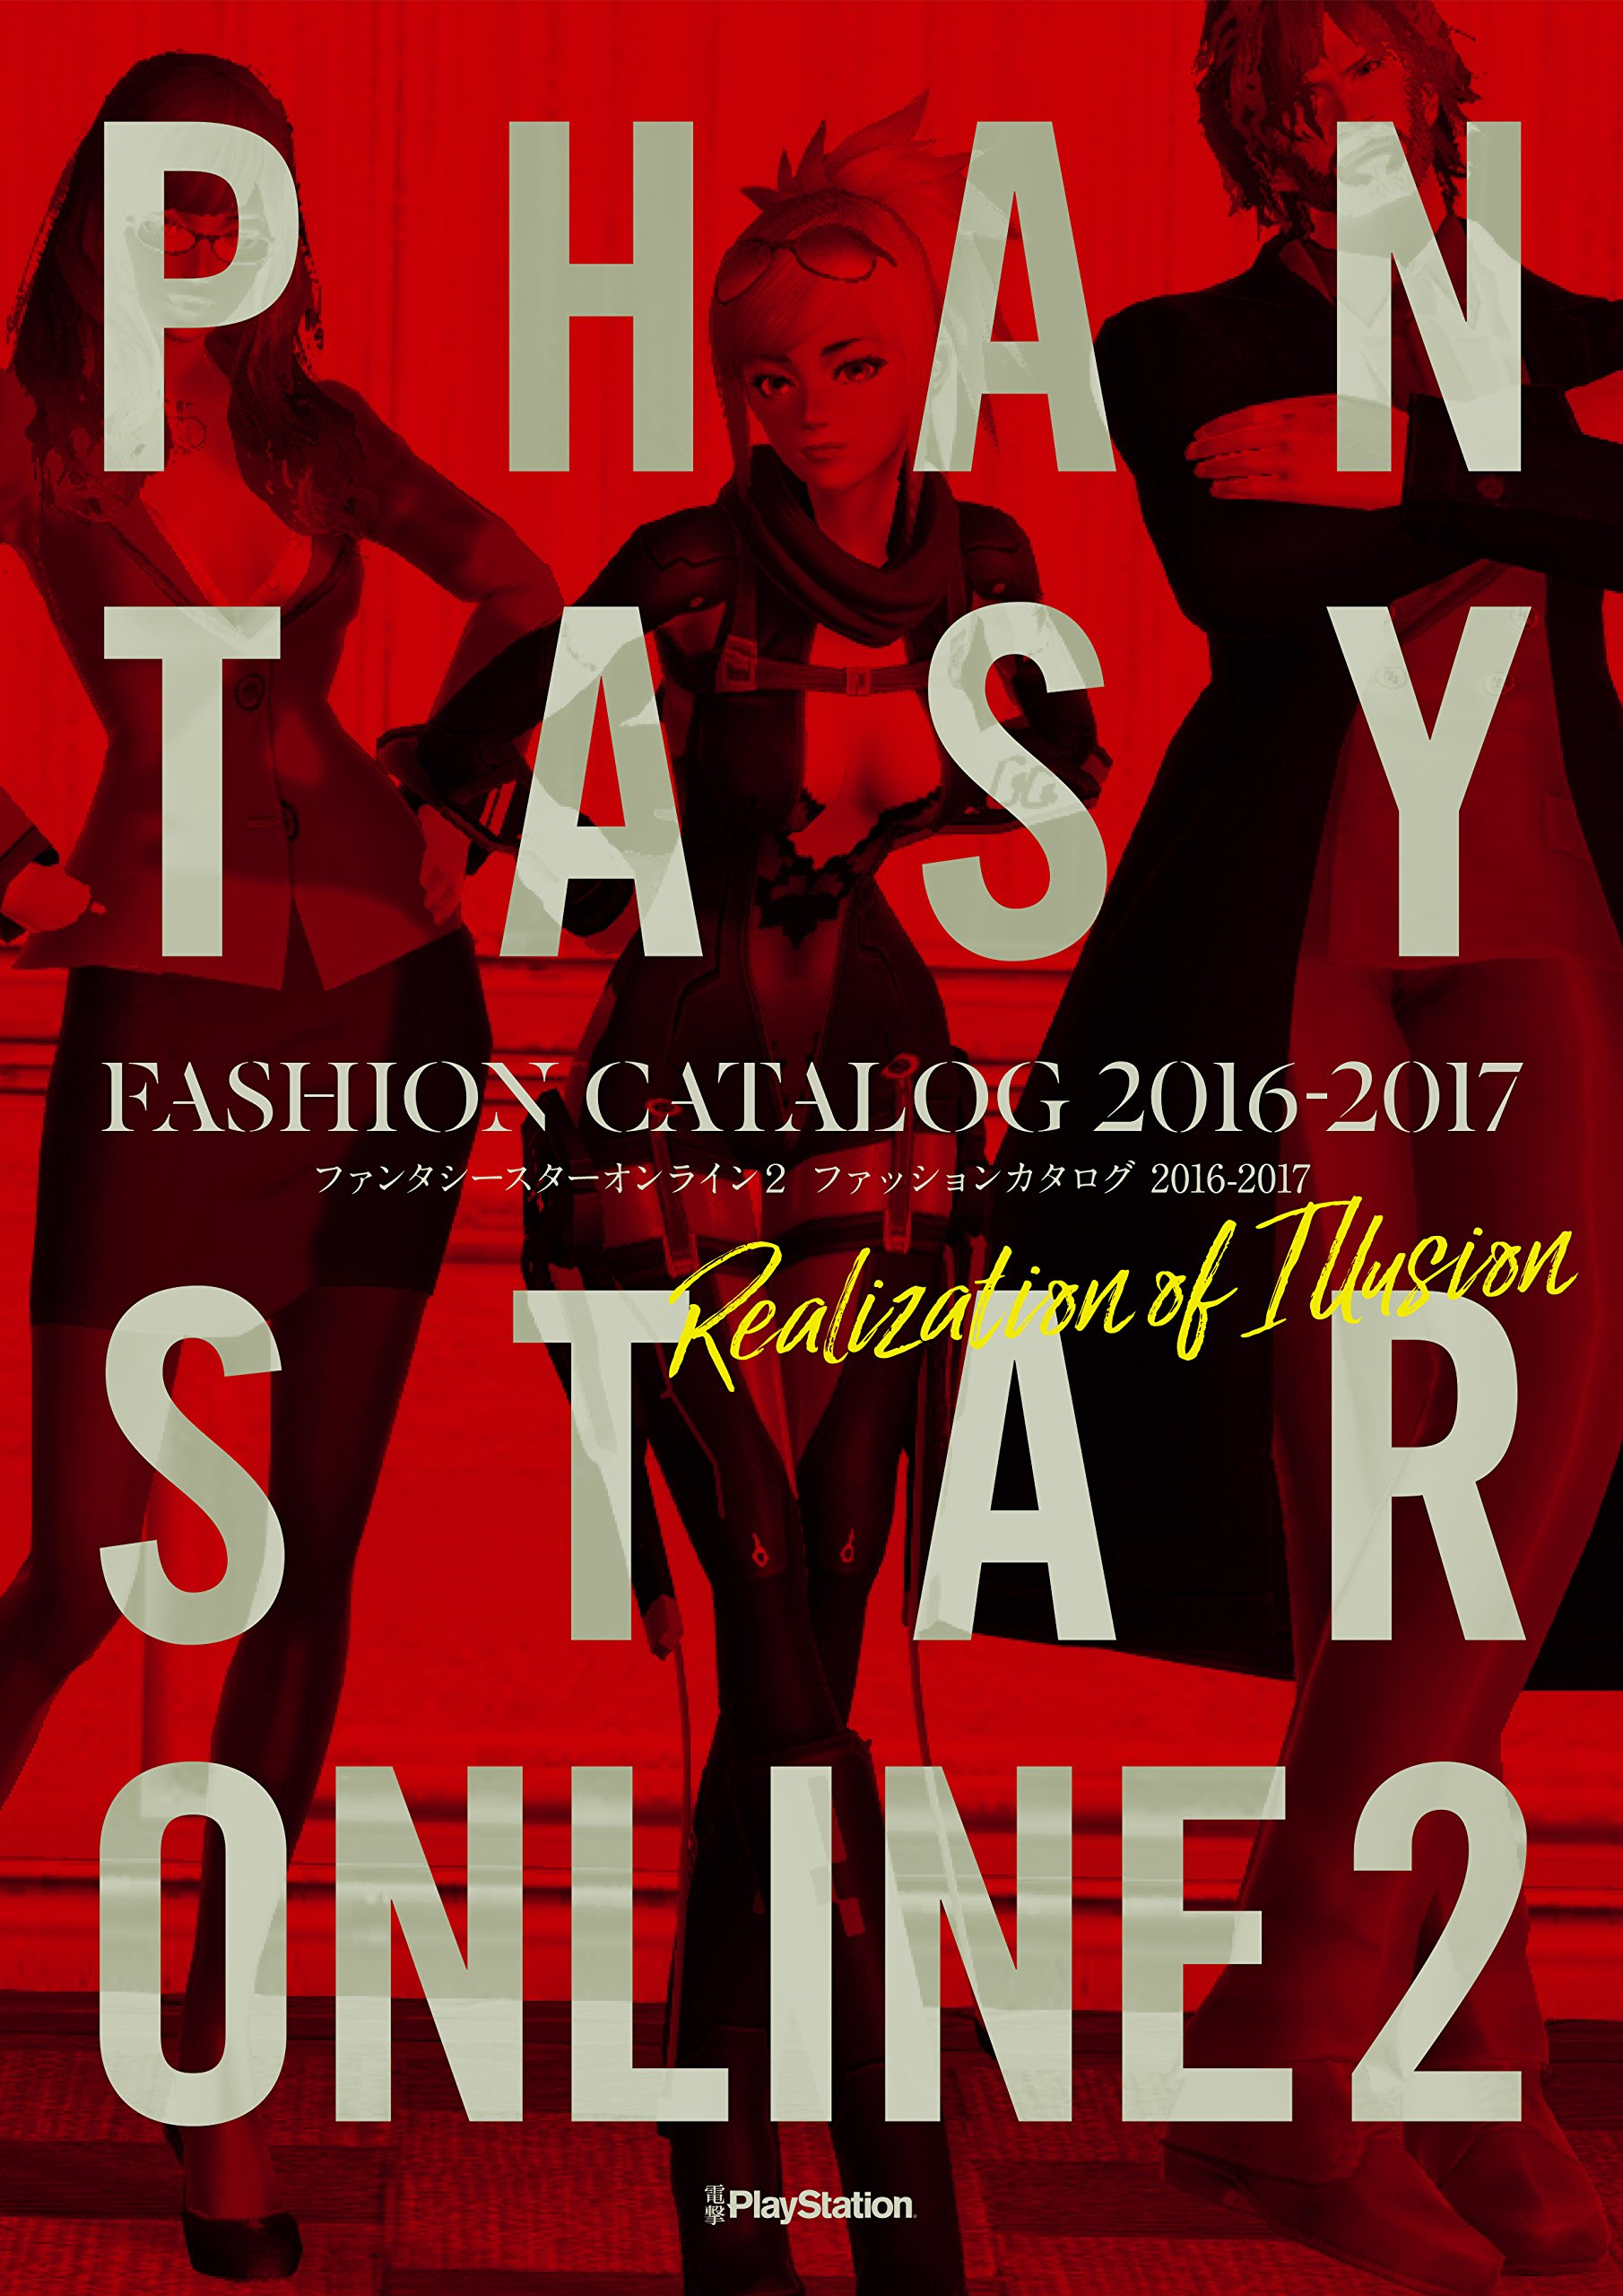 Red color code wolf online - Phantasy Star Online 2 Fashion Catalog 2016 2017 Realization Of Illusion